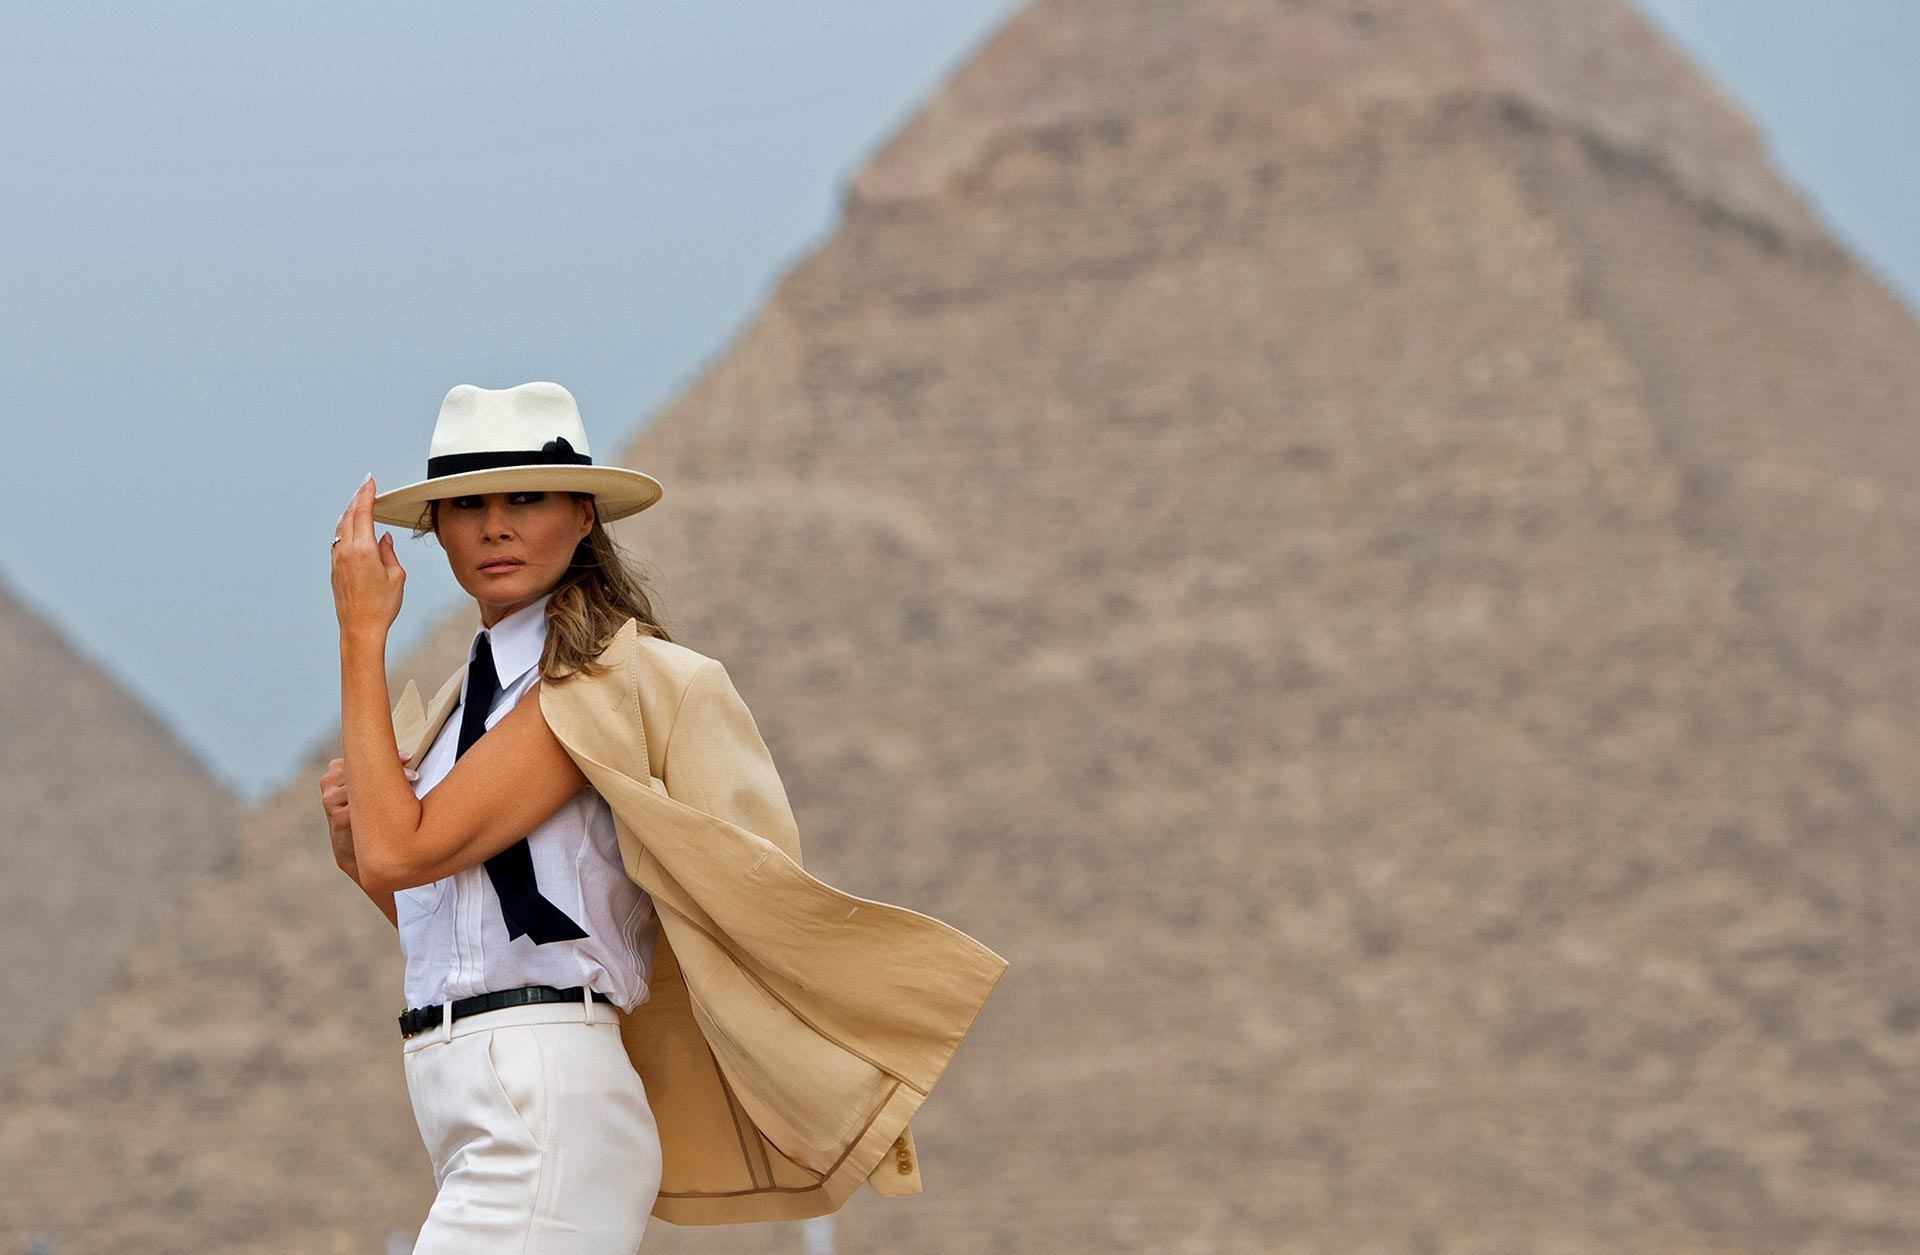 First lady Melania Trump visits the Giza Pyramids in Egypt